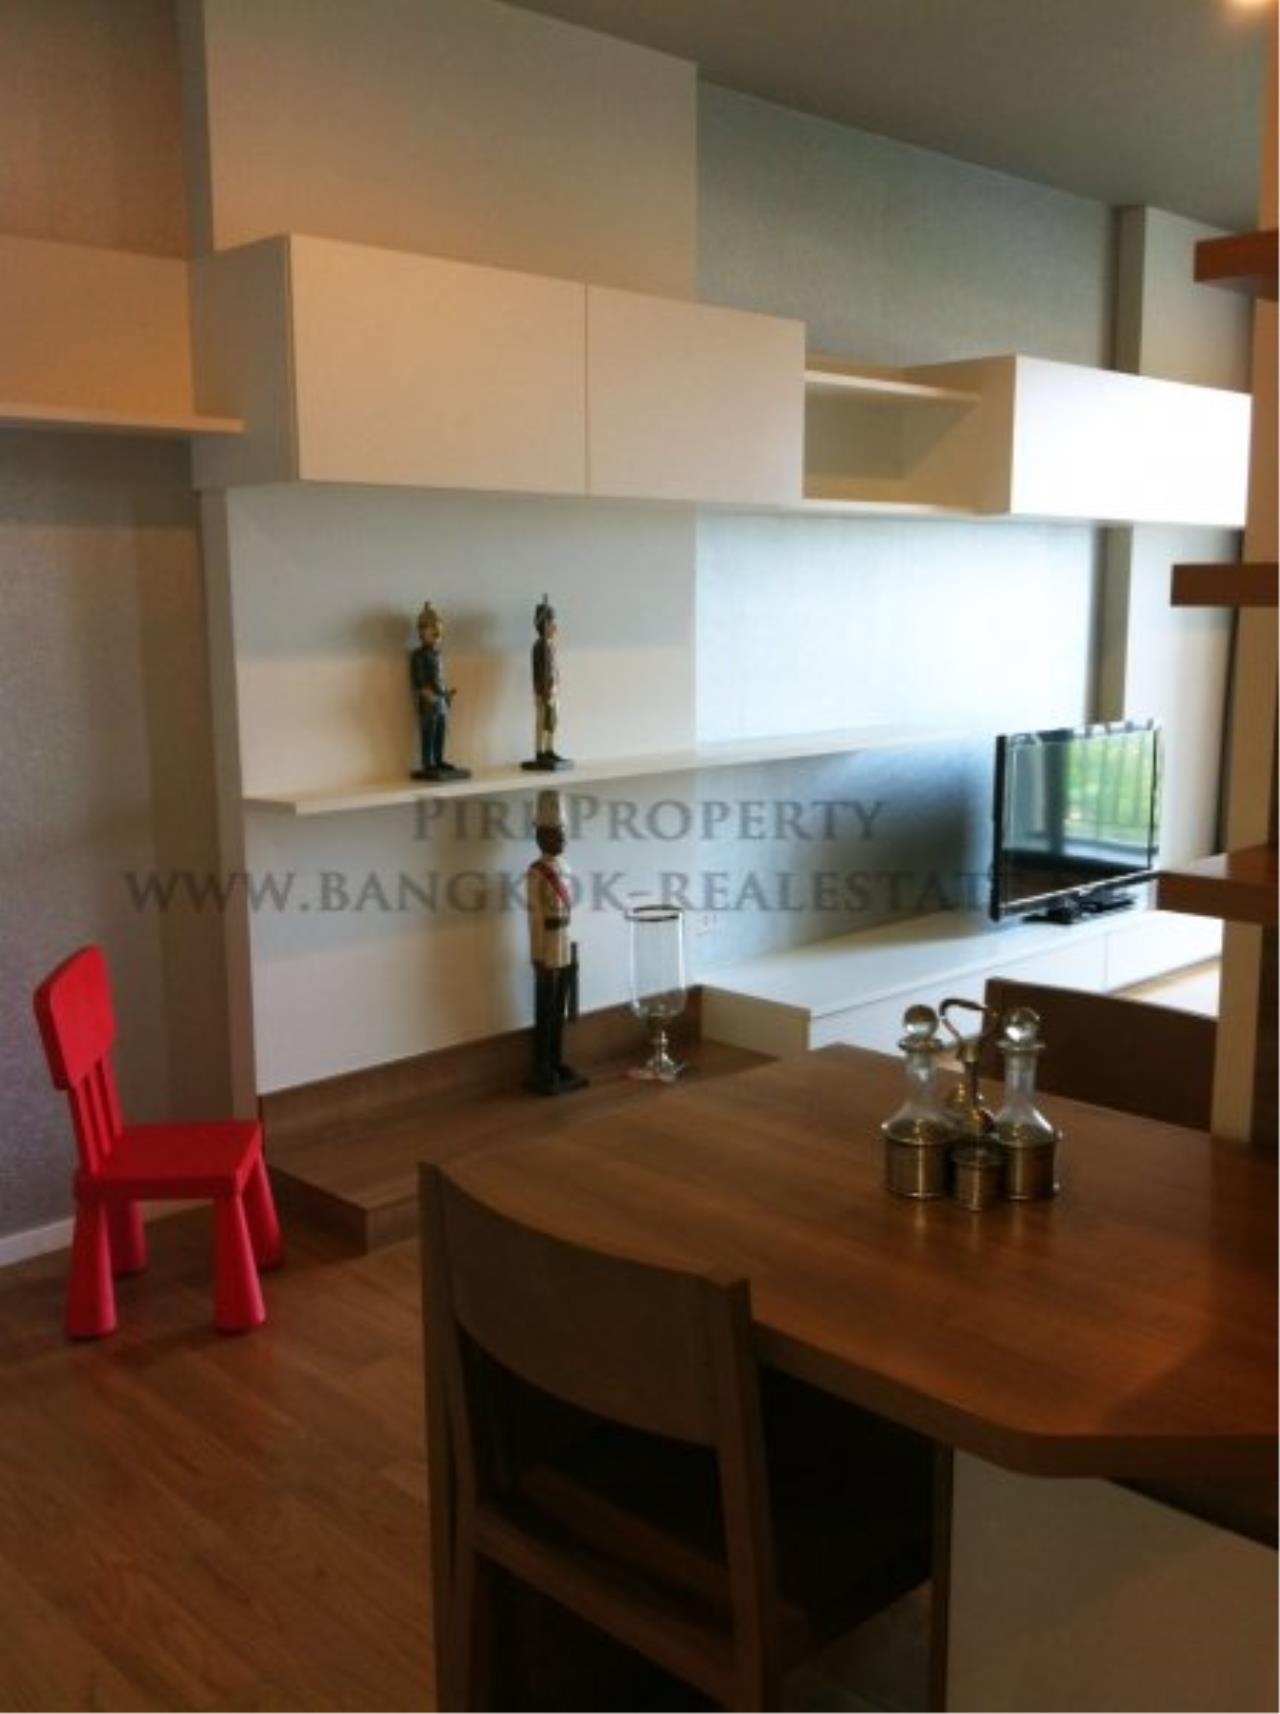 Piri Property Agency's Blocs 77 - Nice 1 Bedroom Condo for Rent 4